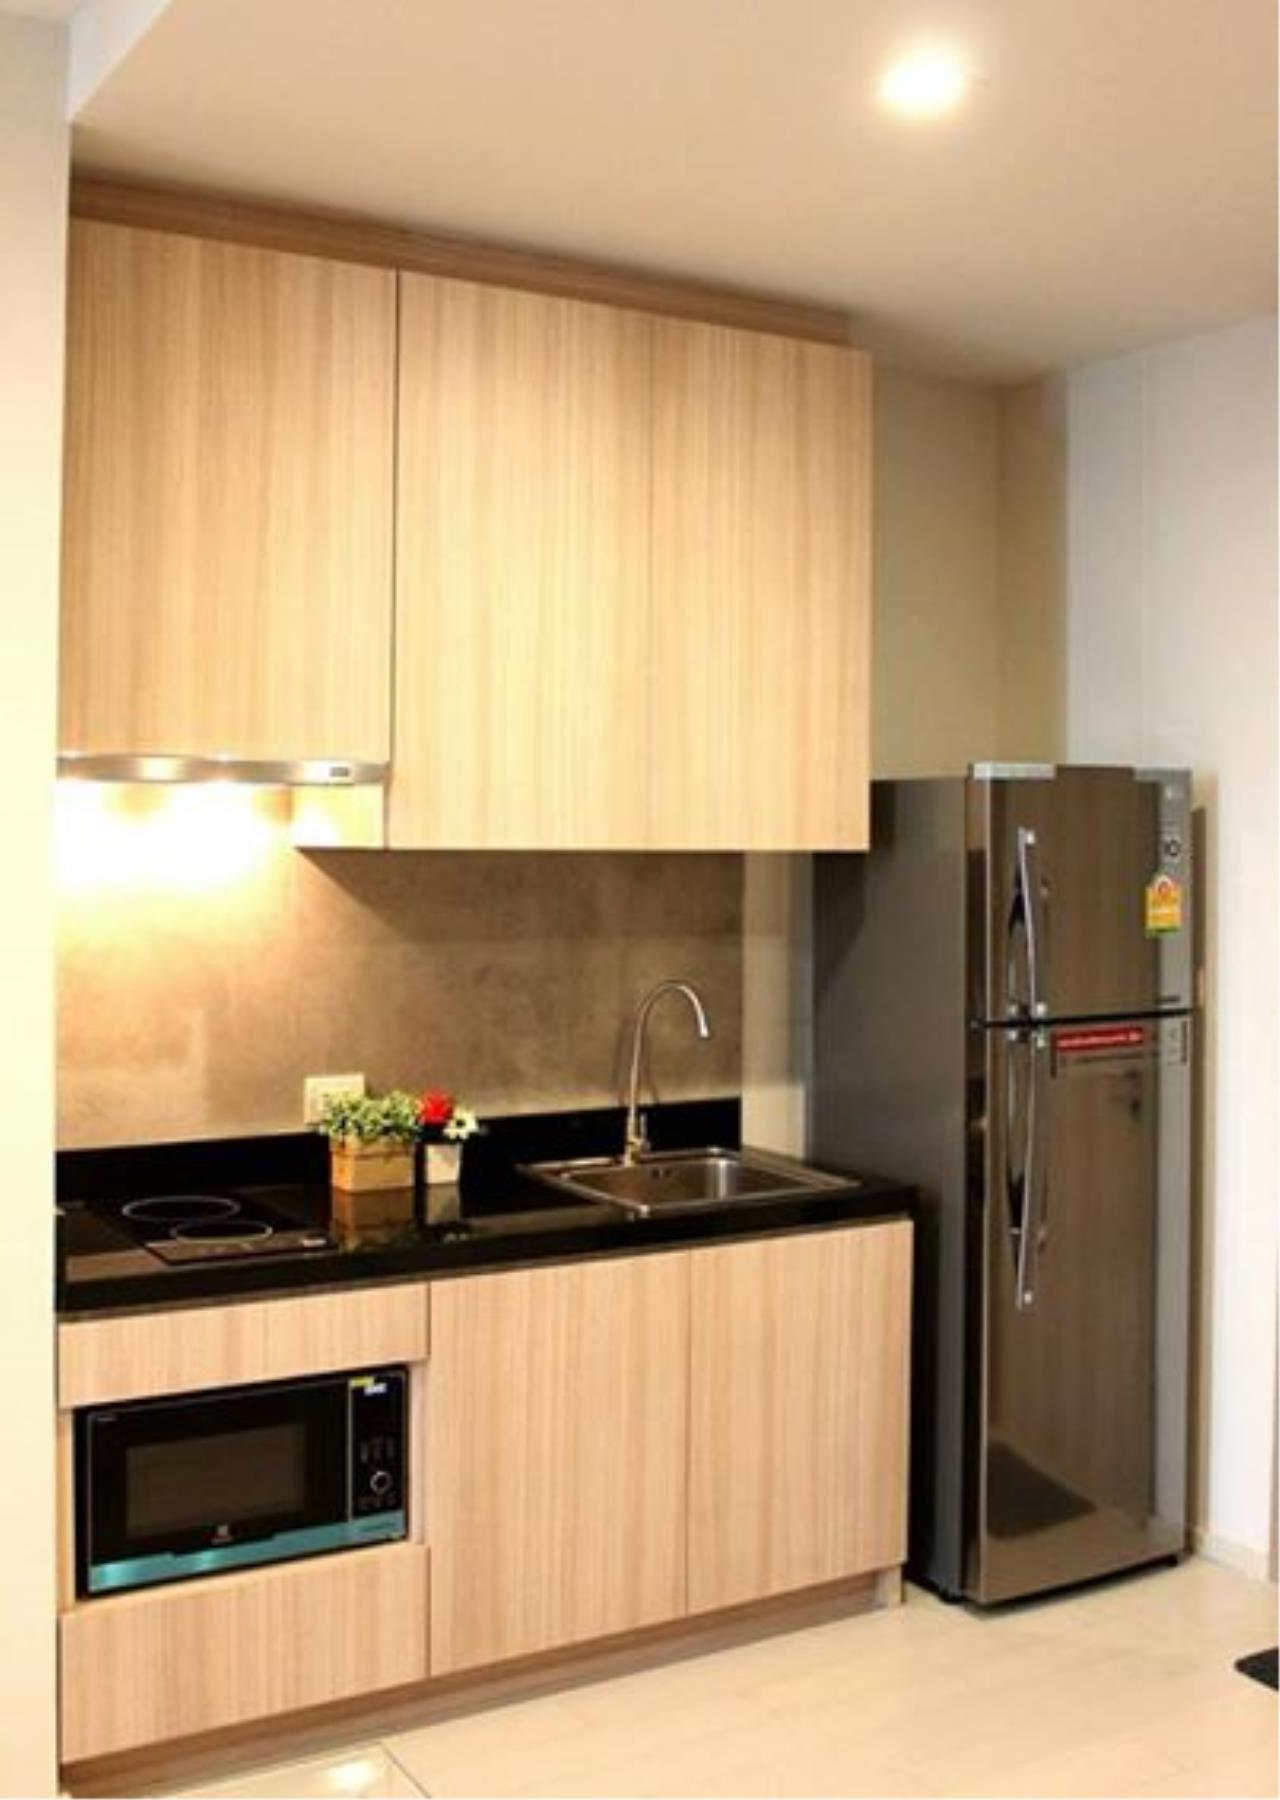 RE/MAX All Star Realty Agency's Noble Ploenchit 1 bedroom, 60 sqm with private lift for RENT 4